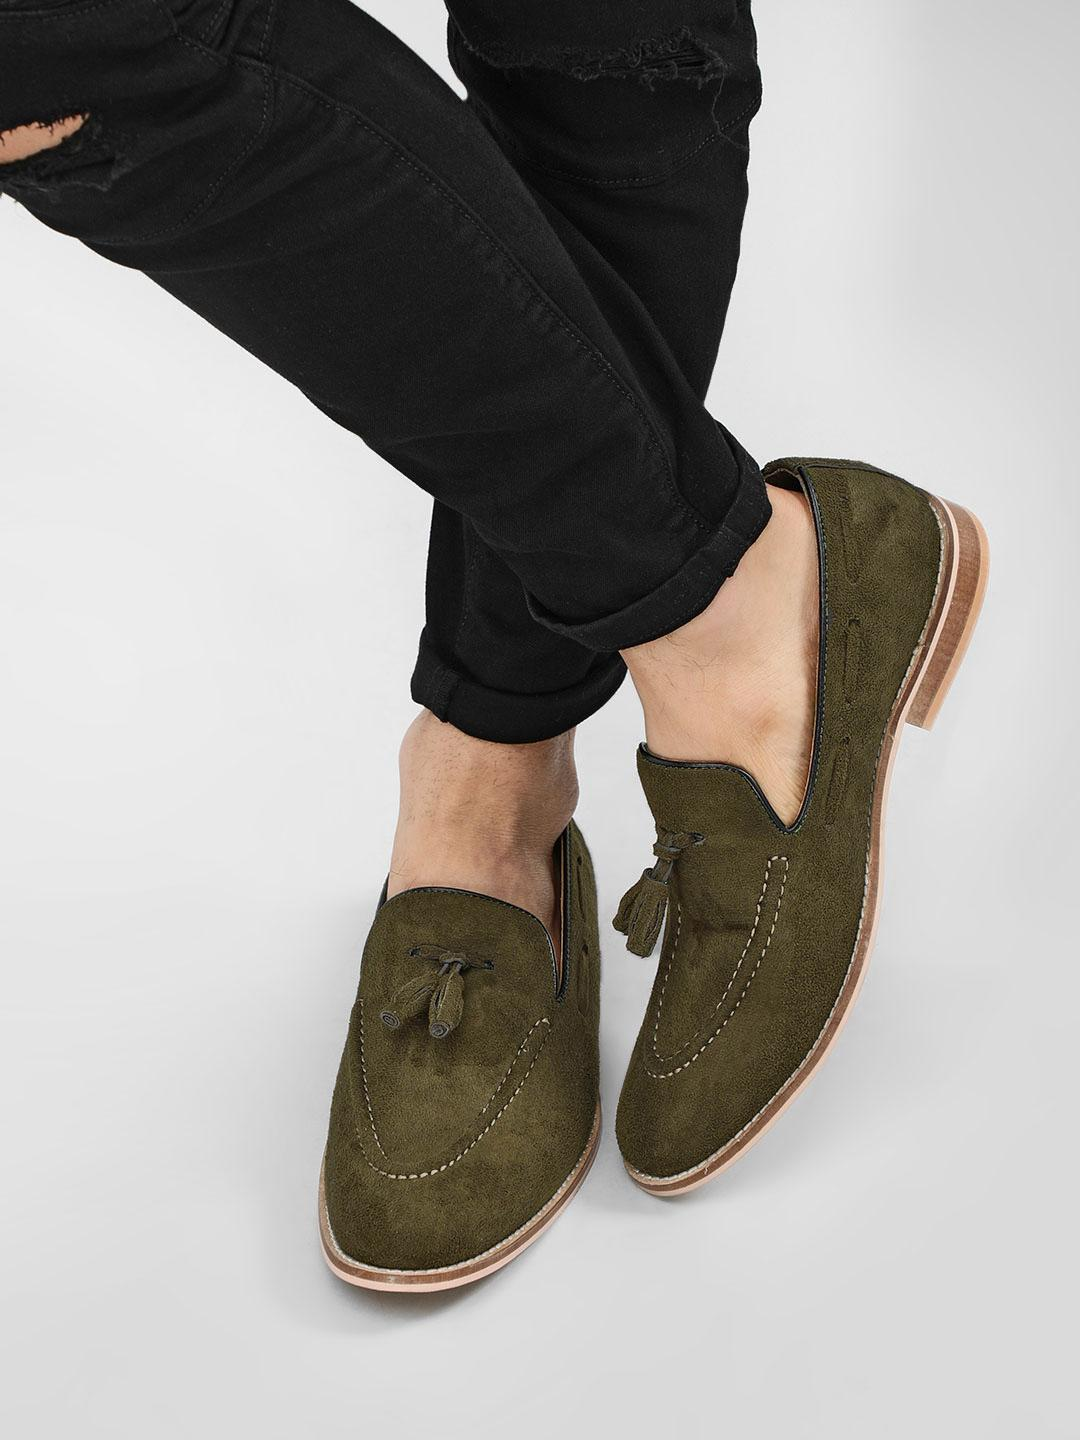 Griffin Olive Tassel Trim Detail Suede Loafers 1